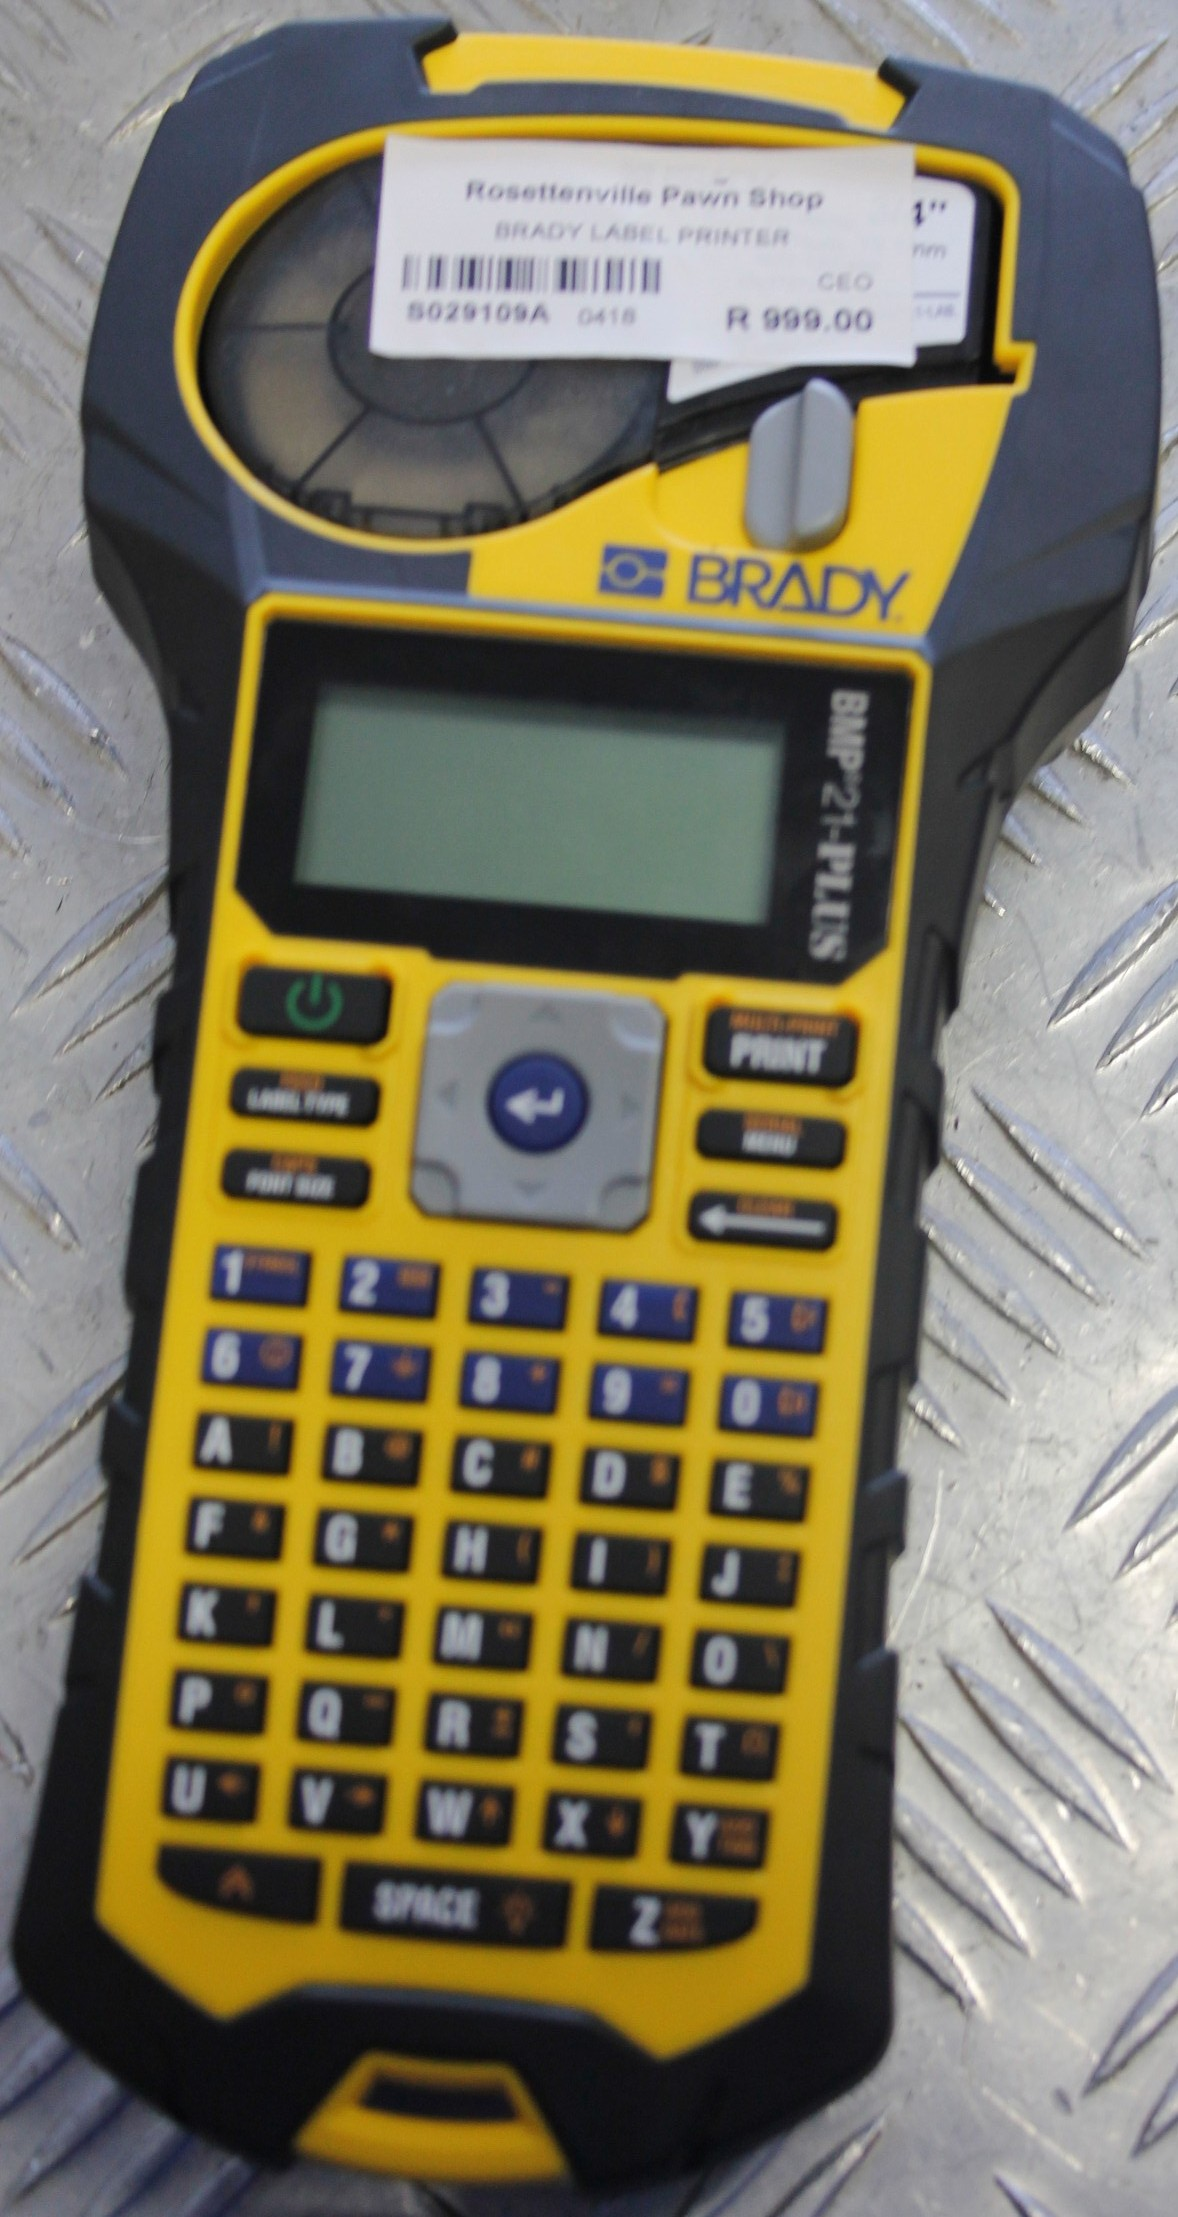 Brady label printer S029109a #Rosettenvillepawnshop